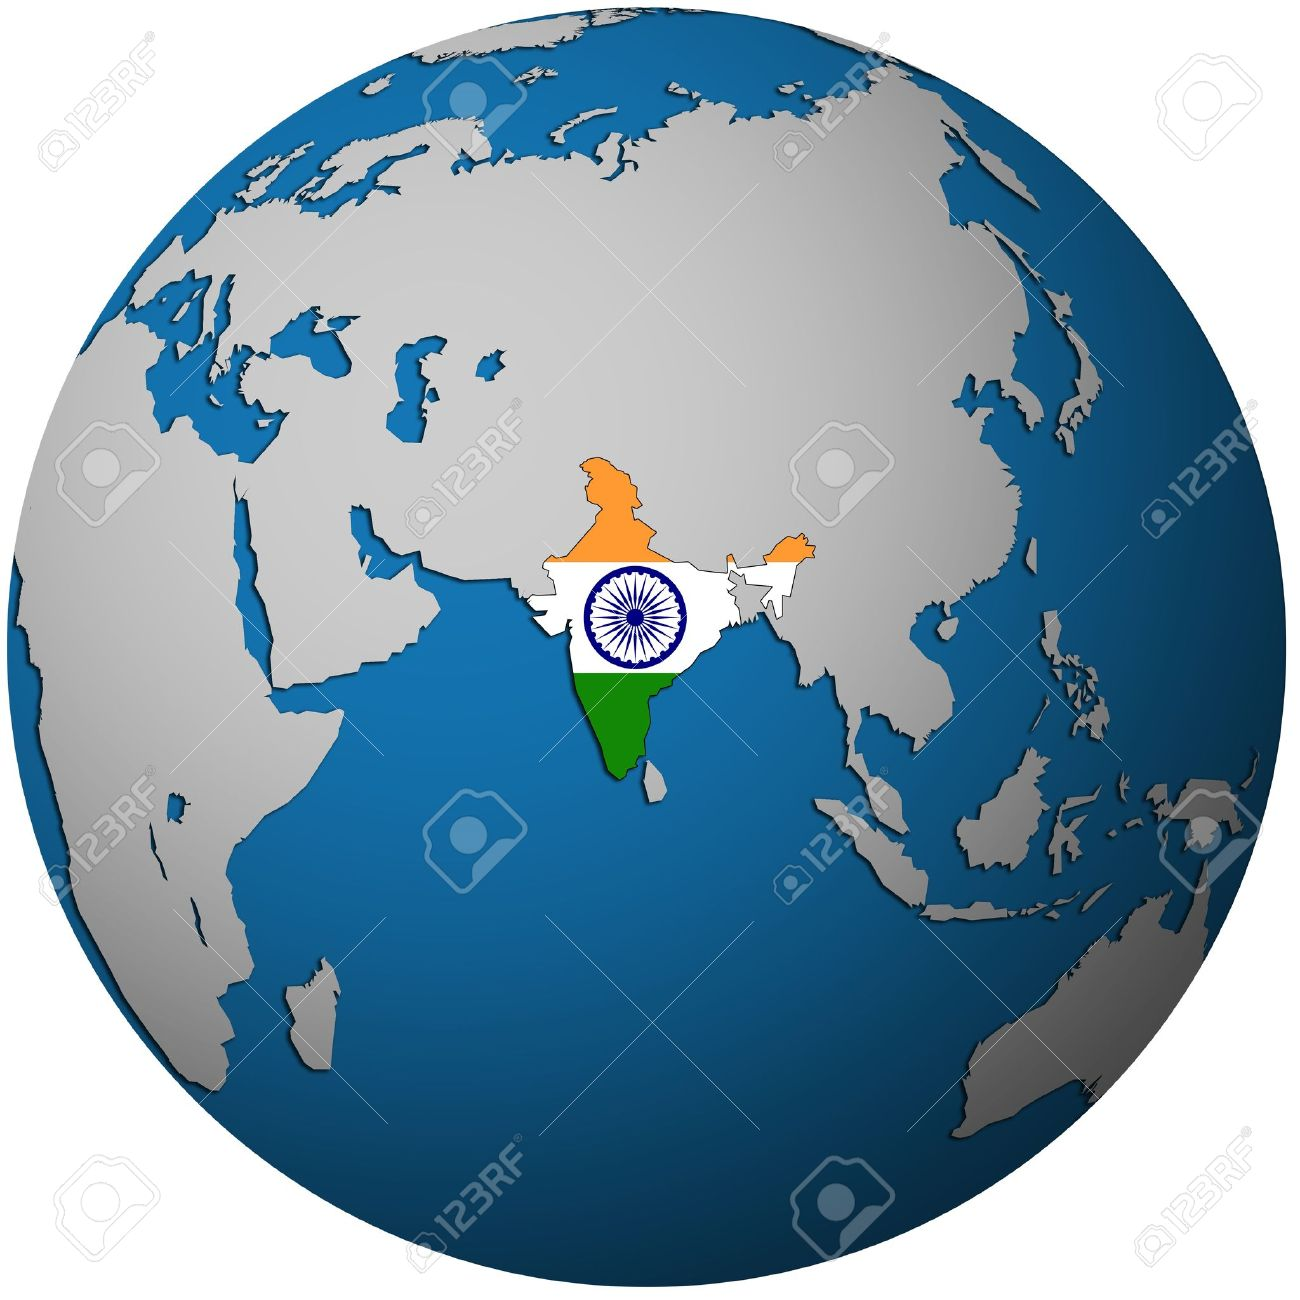 India On A Map Of The World.Isolated Over White Territory Of India With Flag On Globe Map Stock